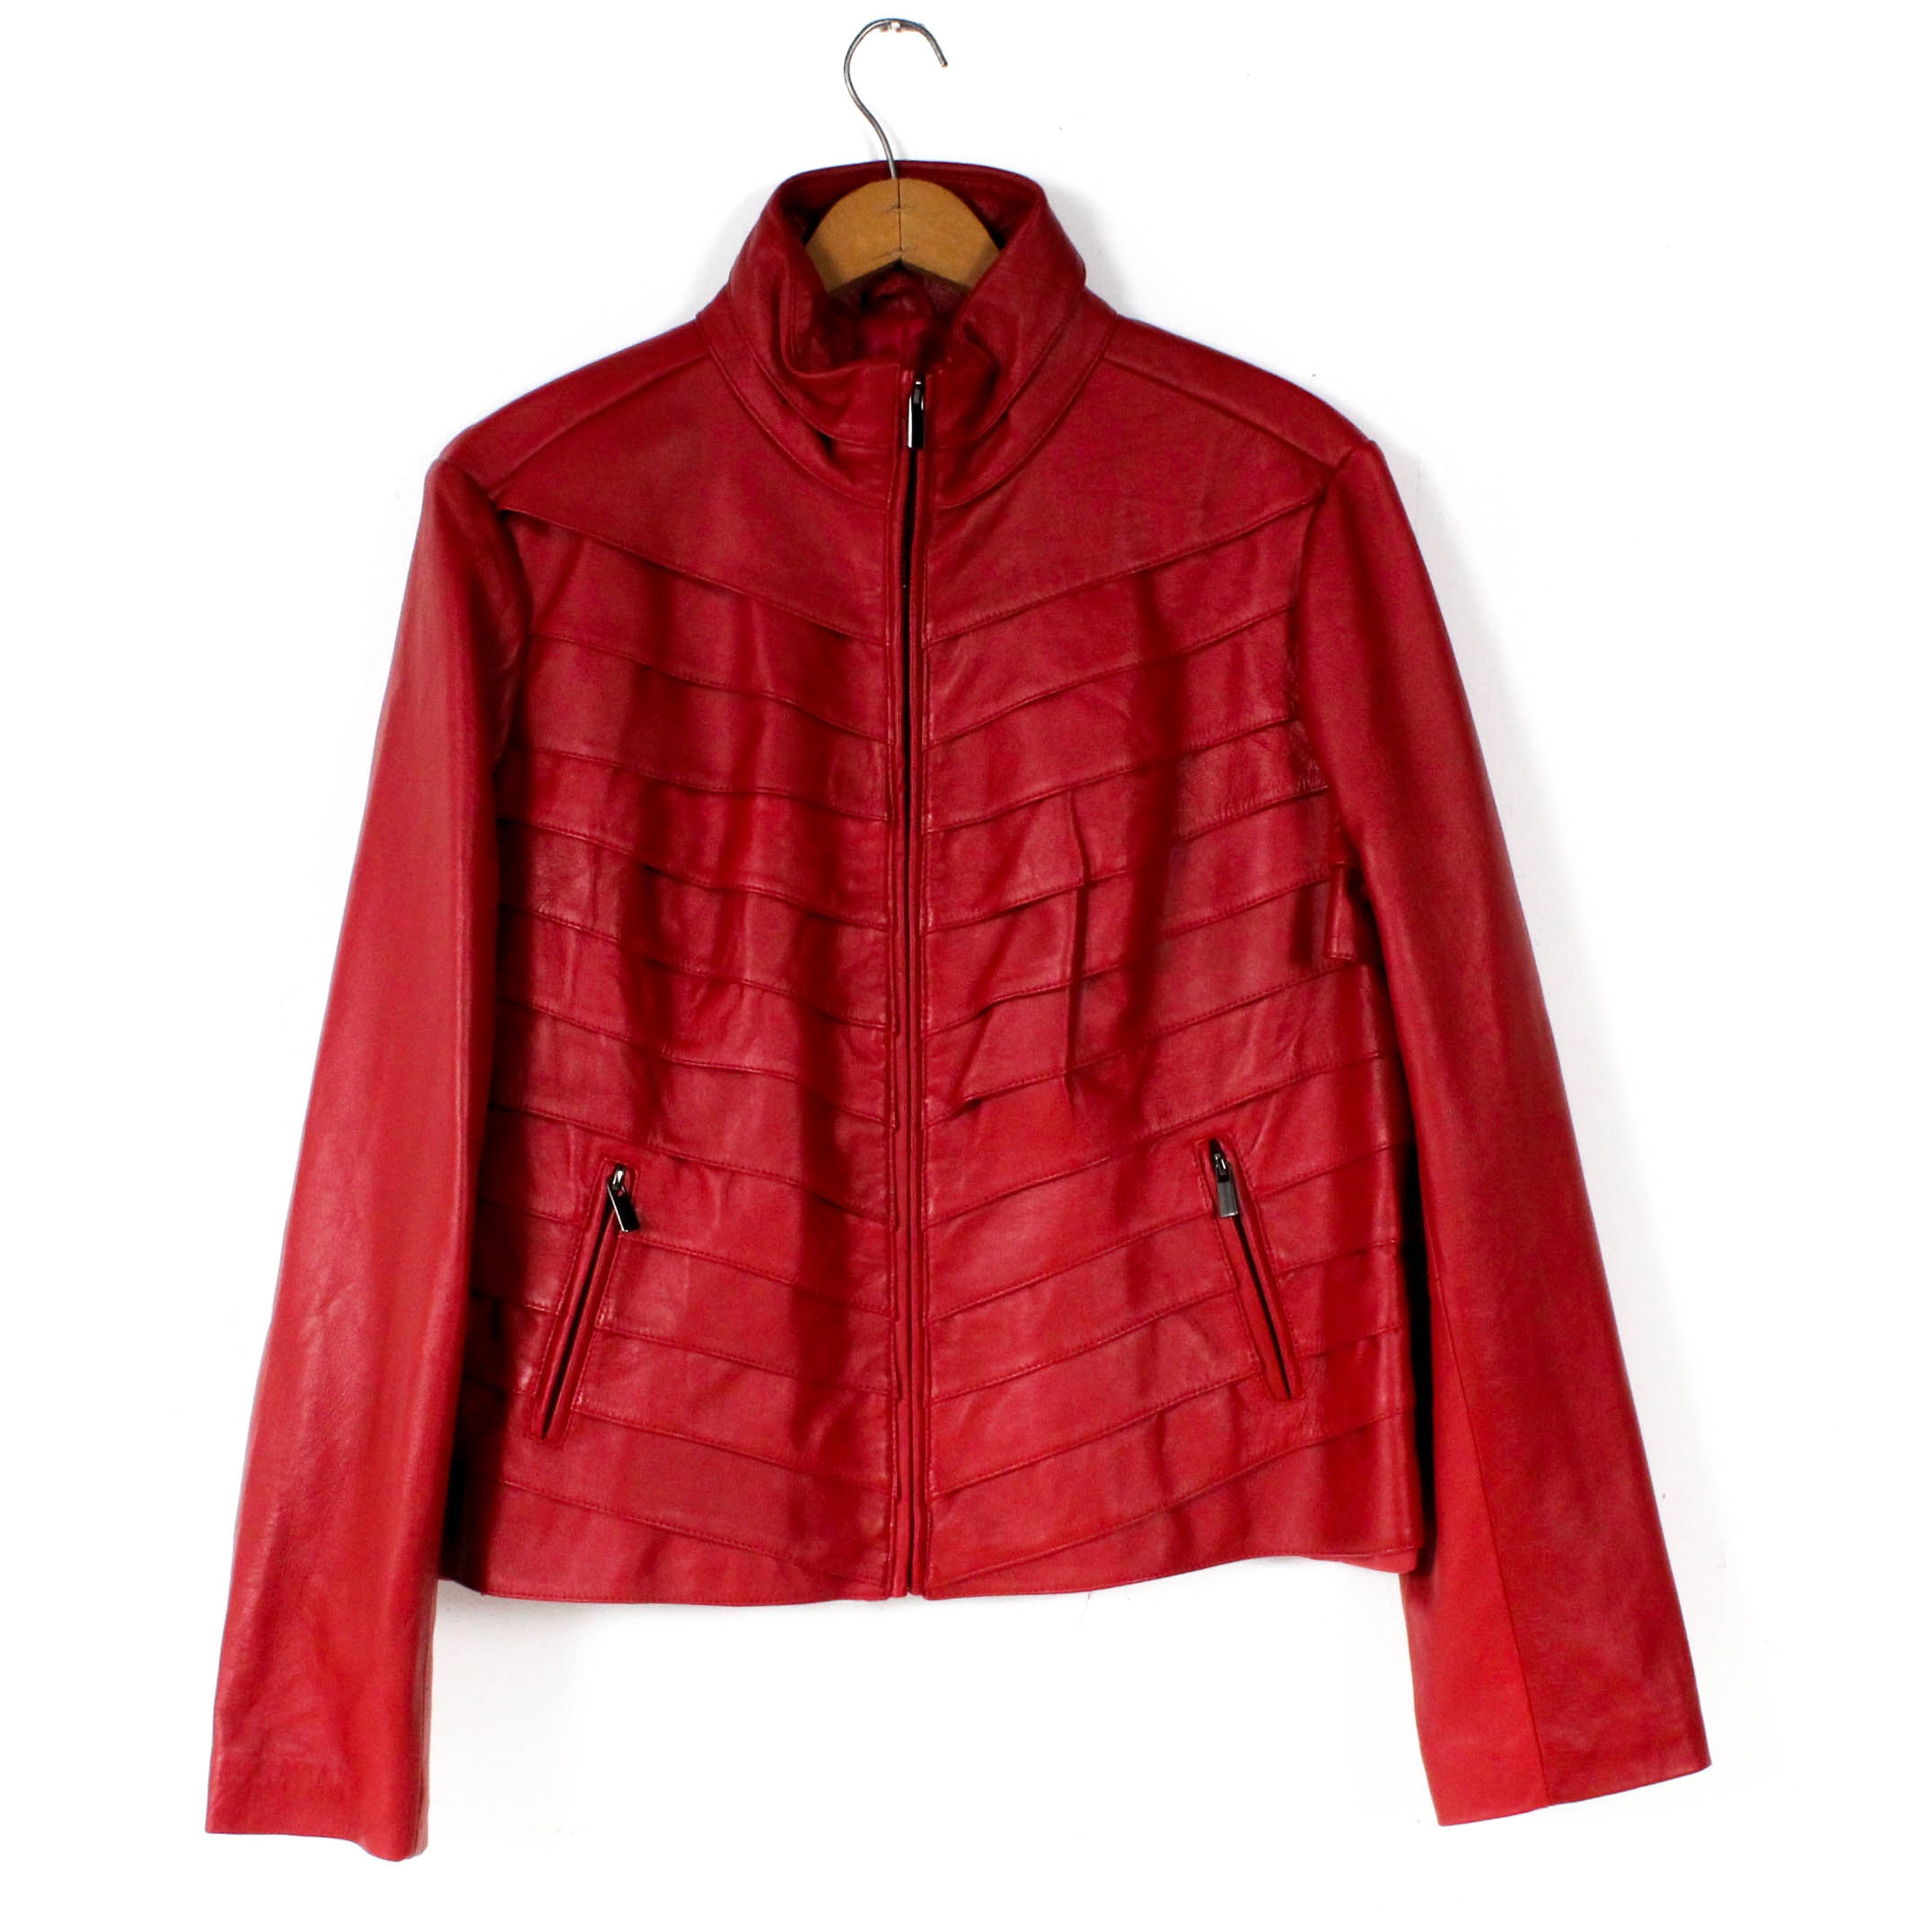 Neiman Marcus Exclusive Red Leather Jacket with Slanted Cut